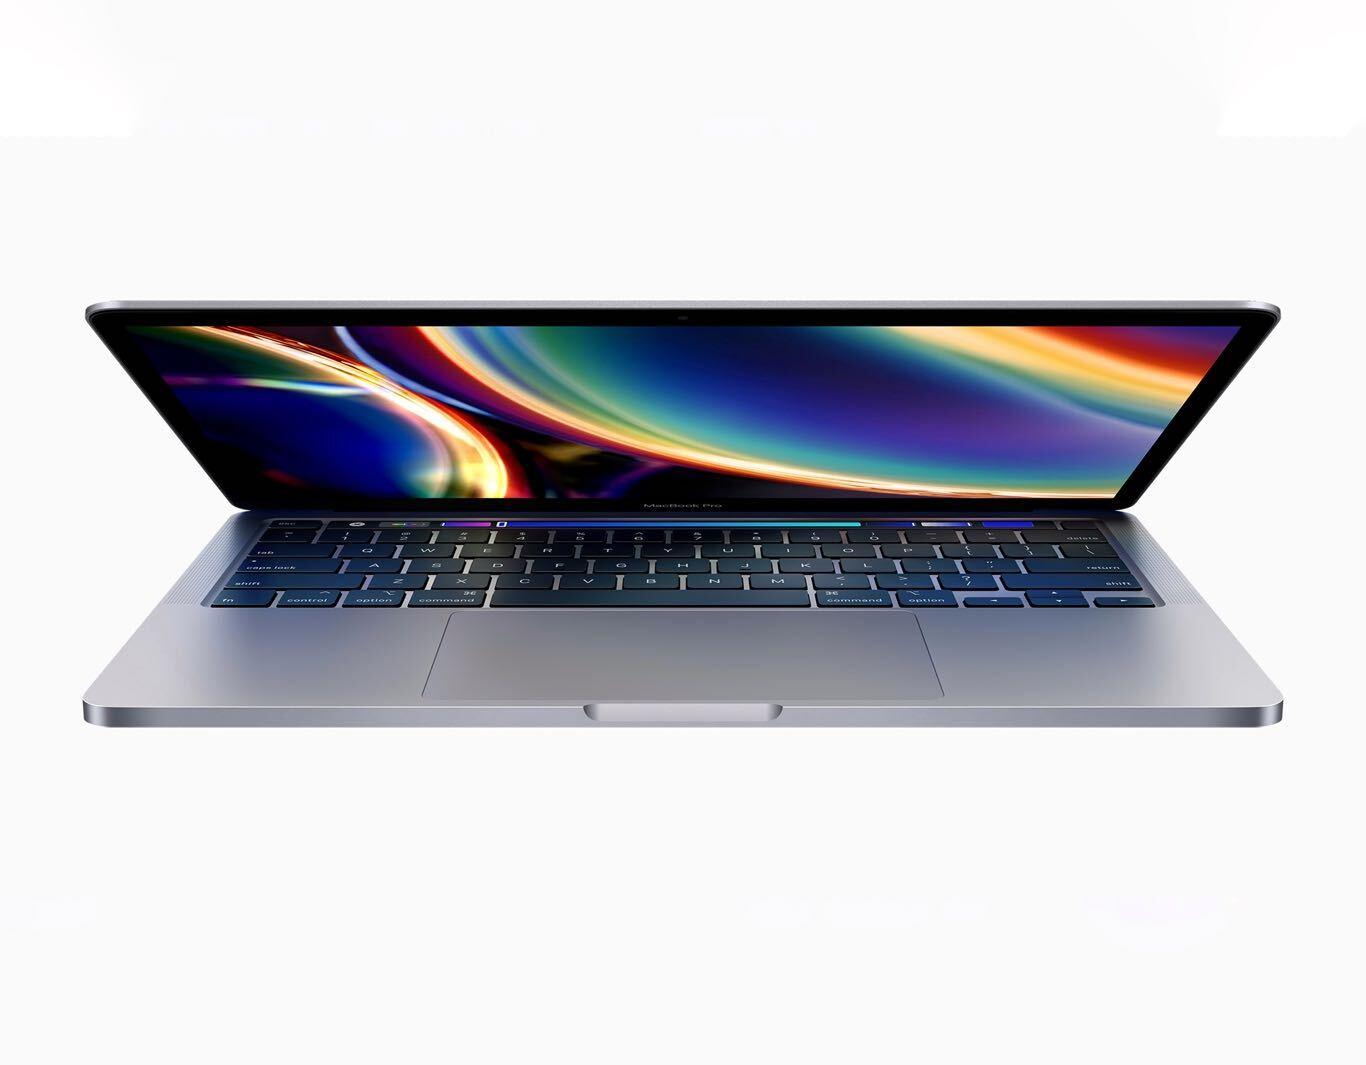 Breaking News: New 13-inch MacBook Pro Has Been Announced. Features A 10th-Generation CPU and Scissor-switch Magic Keyboard - Engadget 日本版